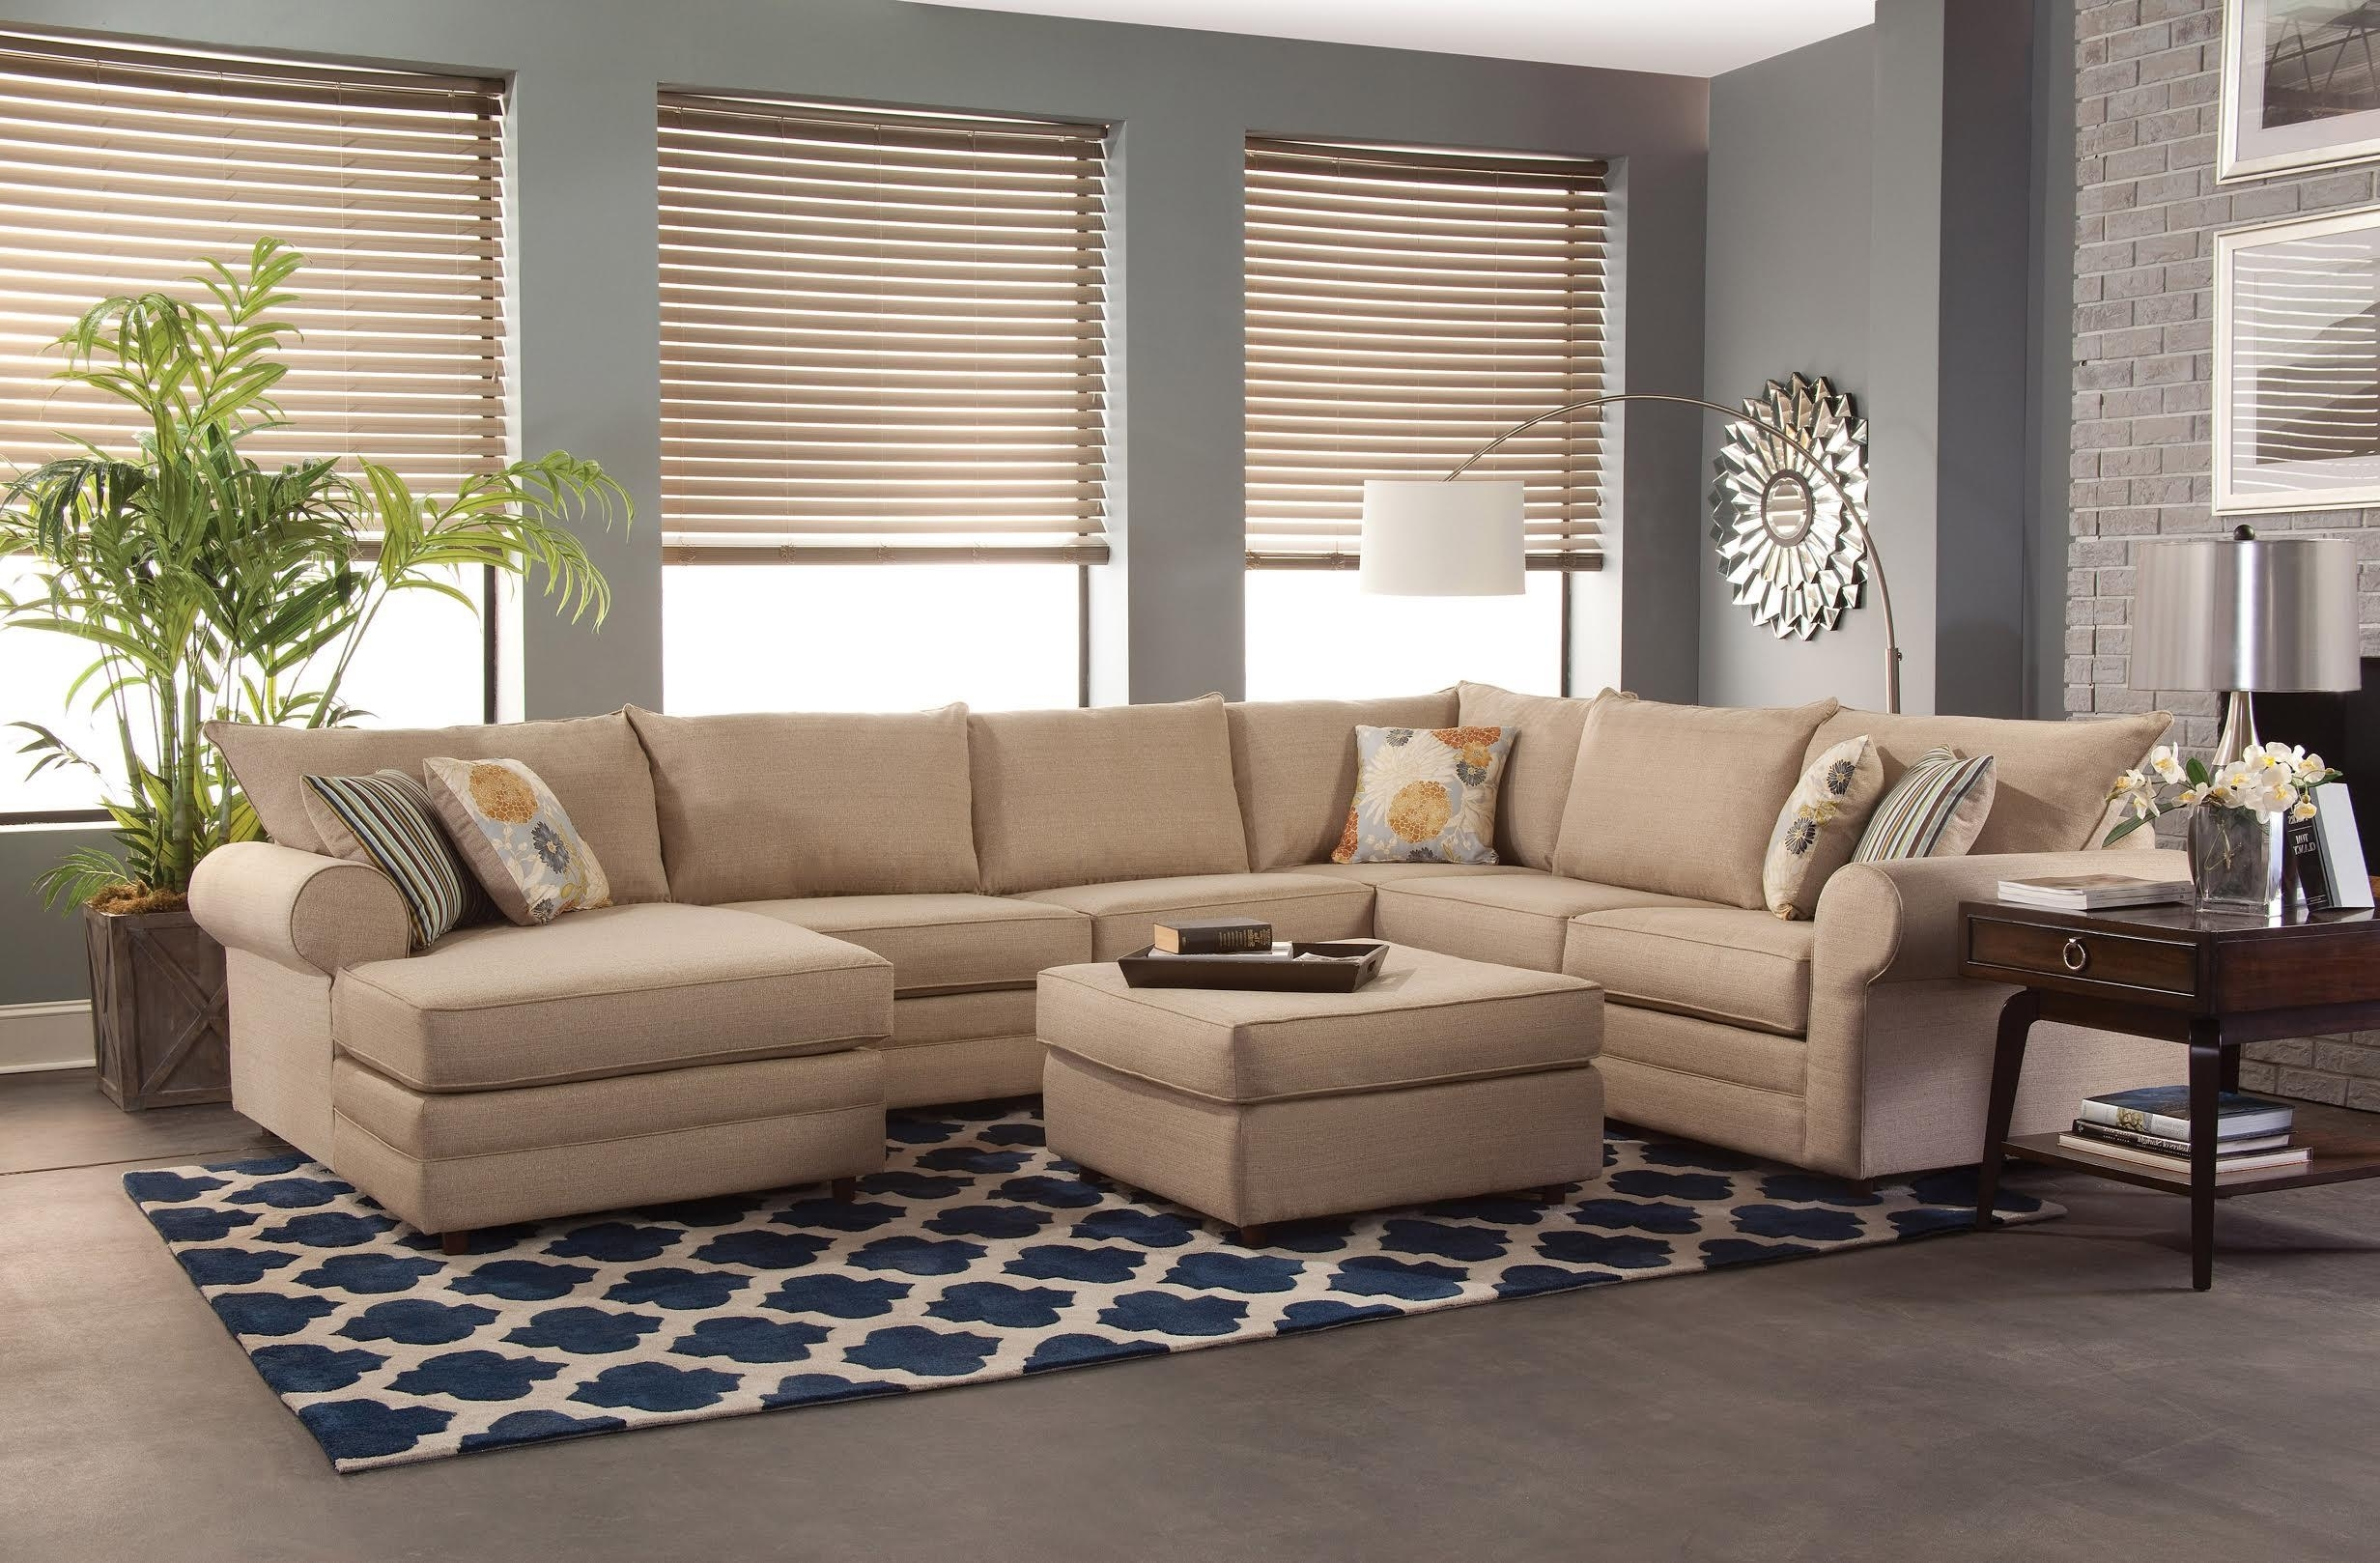 Fashionable Sectional Sofas With Belfort Essentials Monticello Casual Sectional Sofa (View 17 of 20)